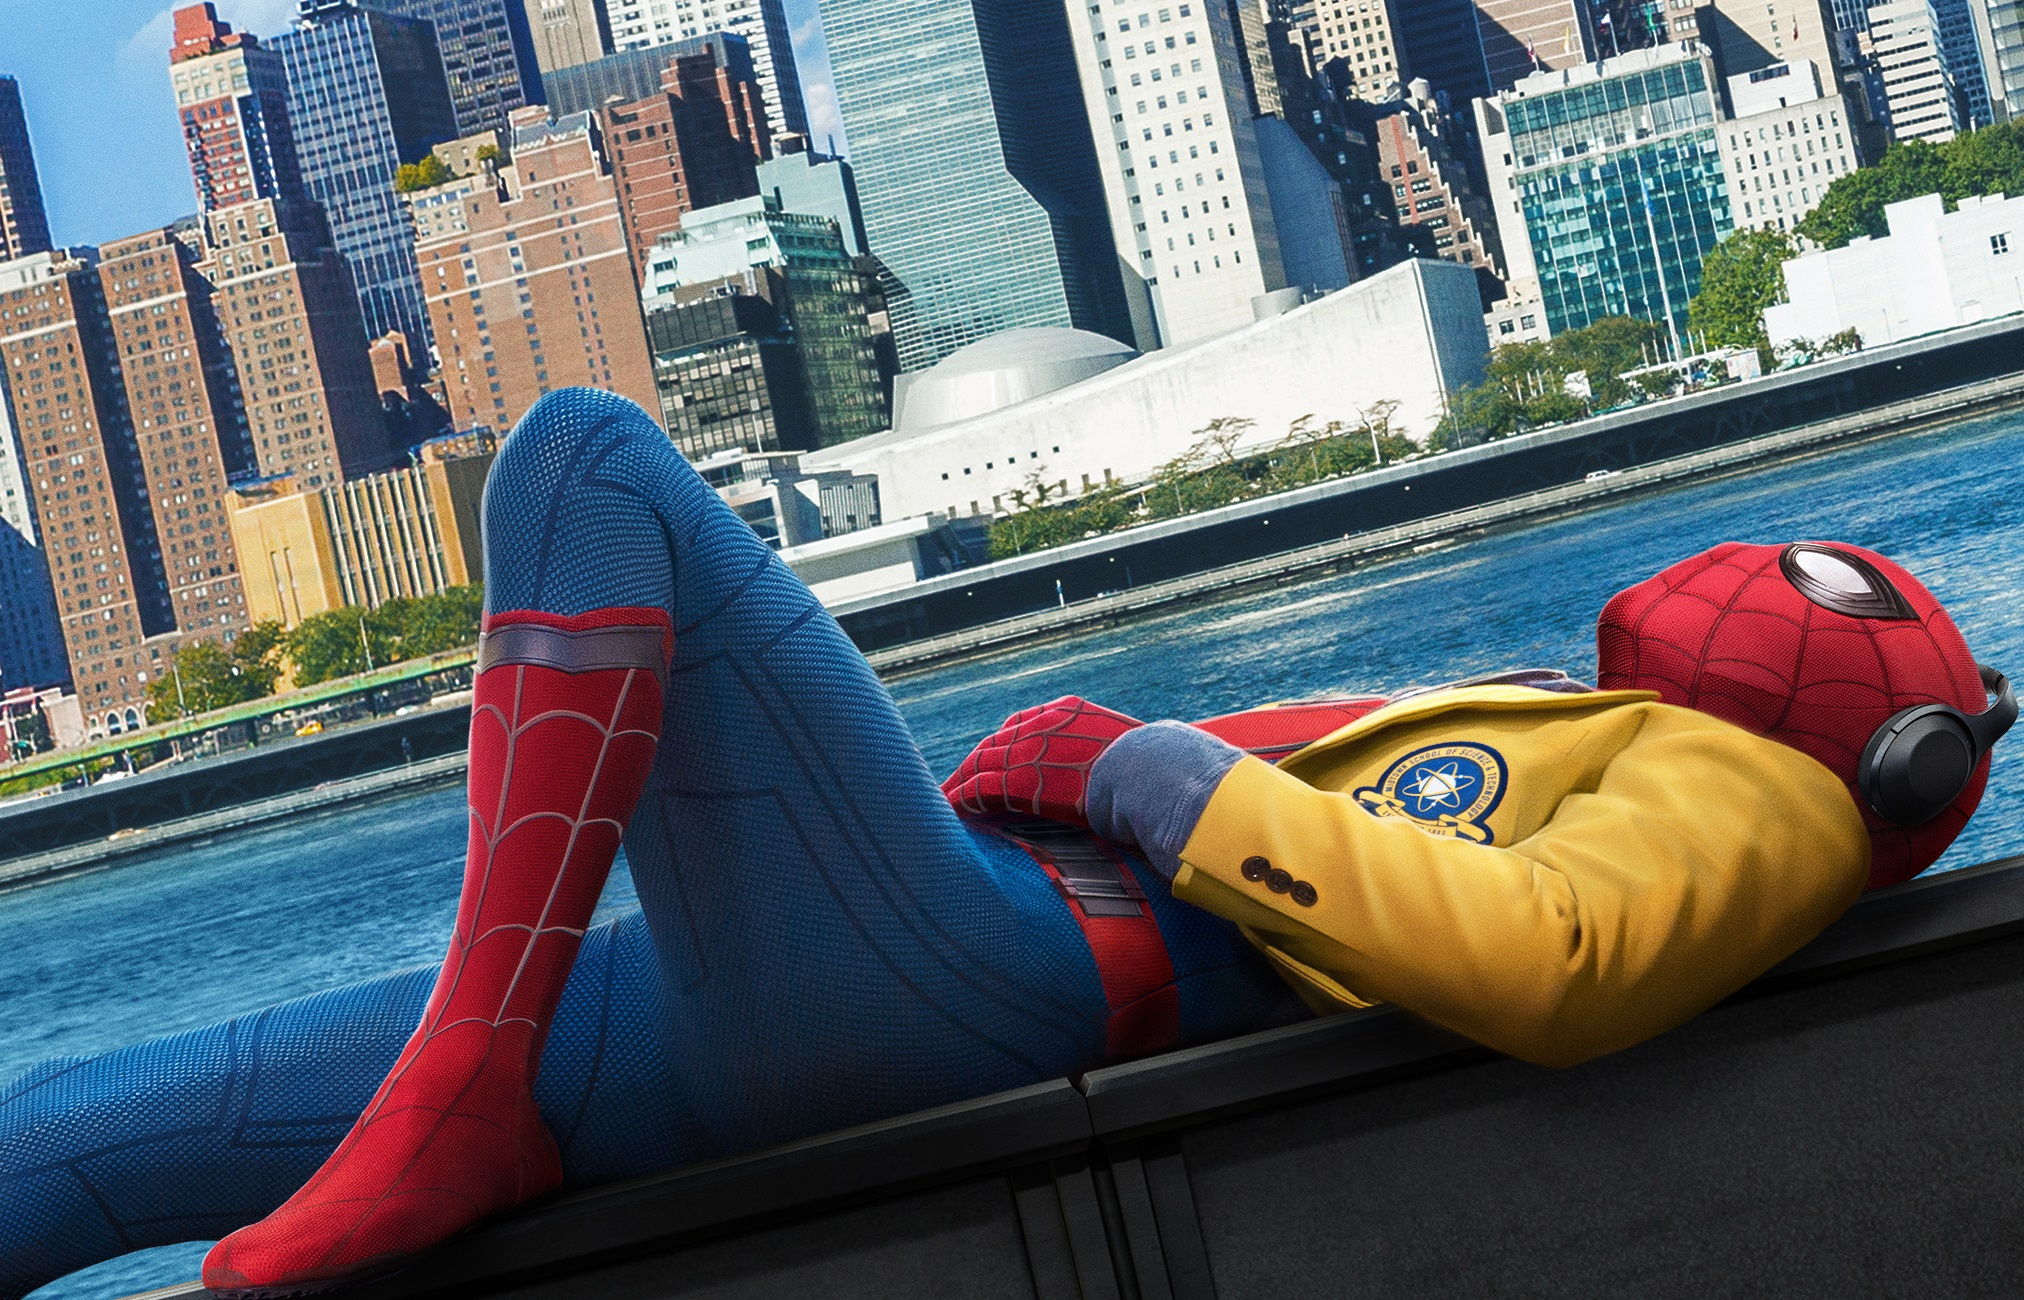 30 Latest Spider man Homecoming HD Wallpaper 2017 2024x1300